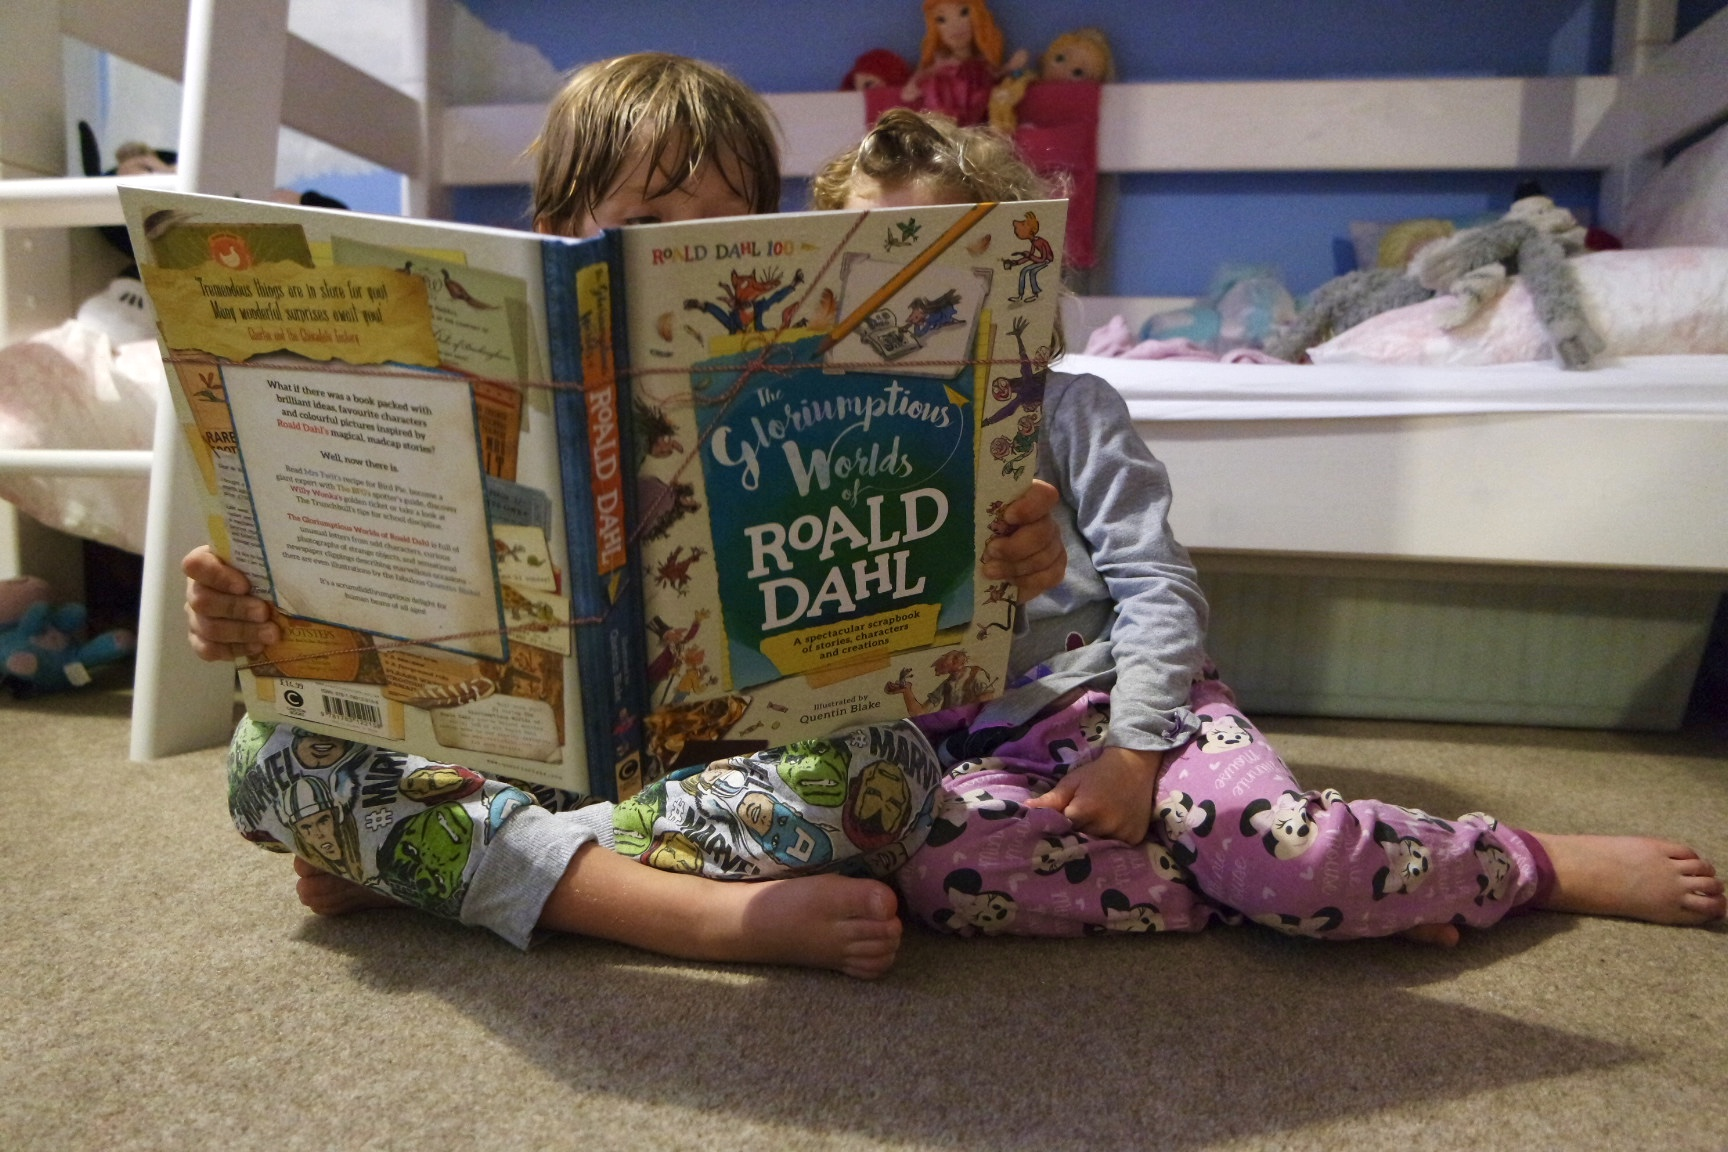 Celebrating 100 years of Roald Dahl #Competition #RoaldDahlDay